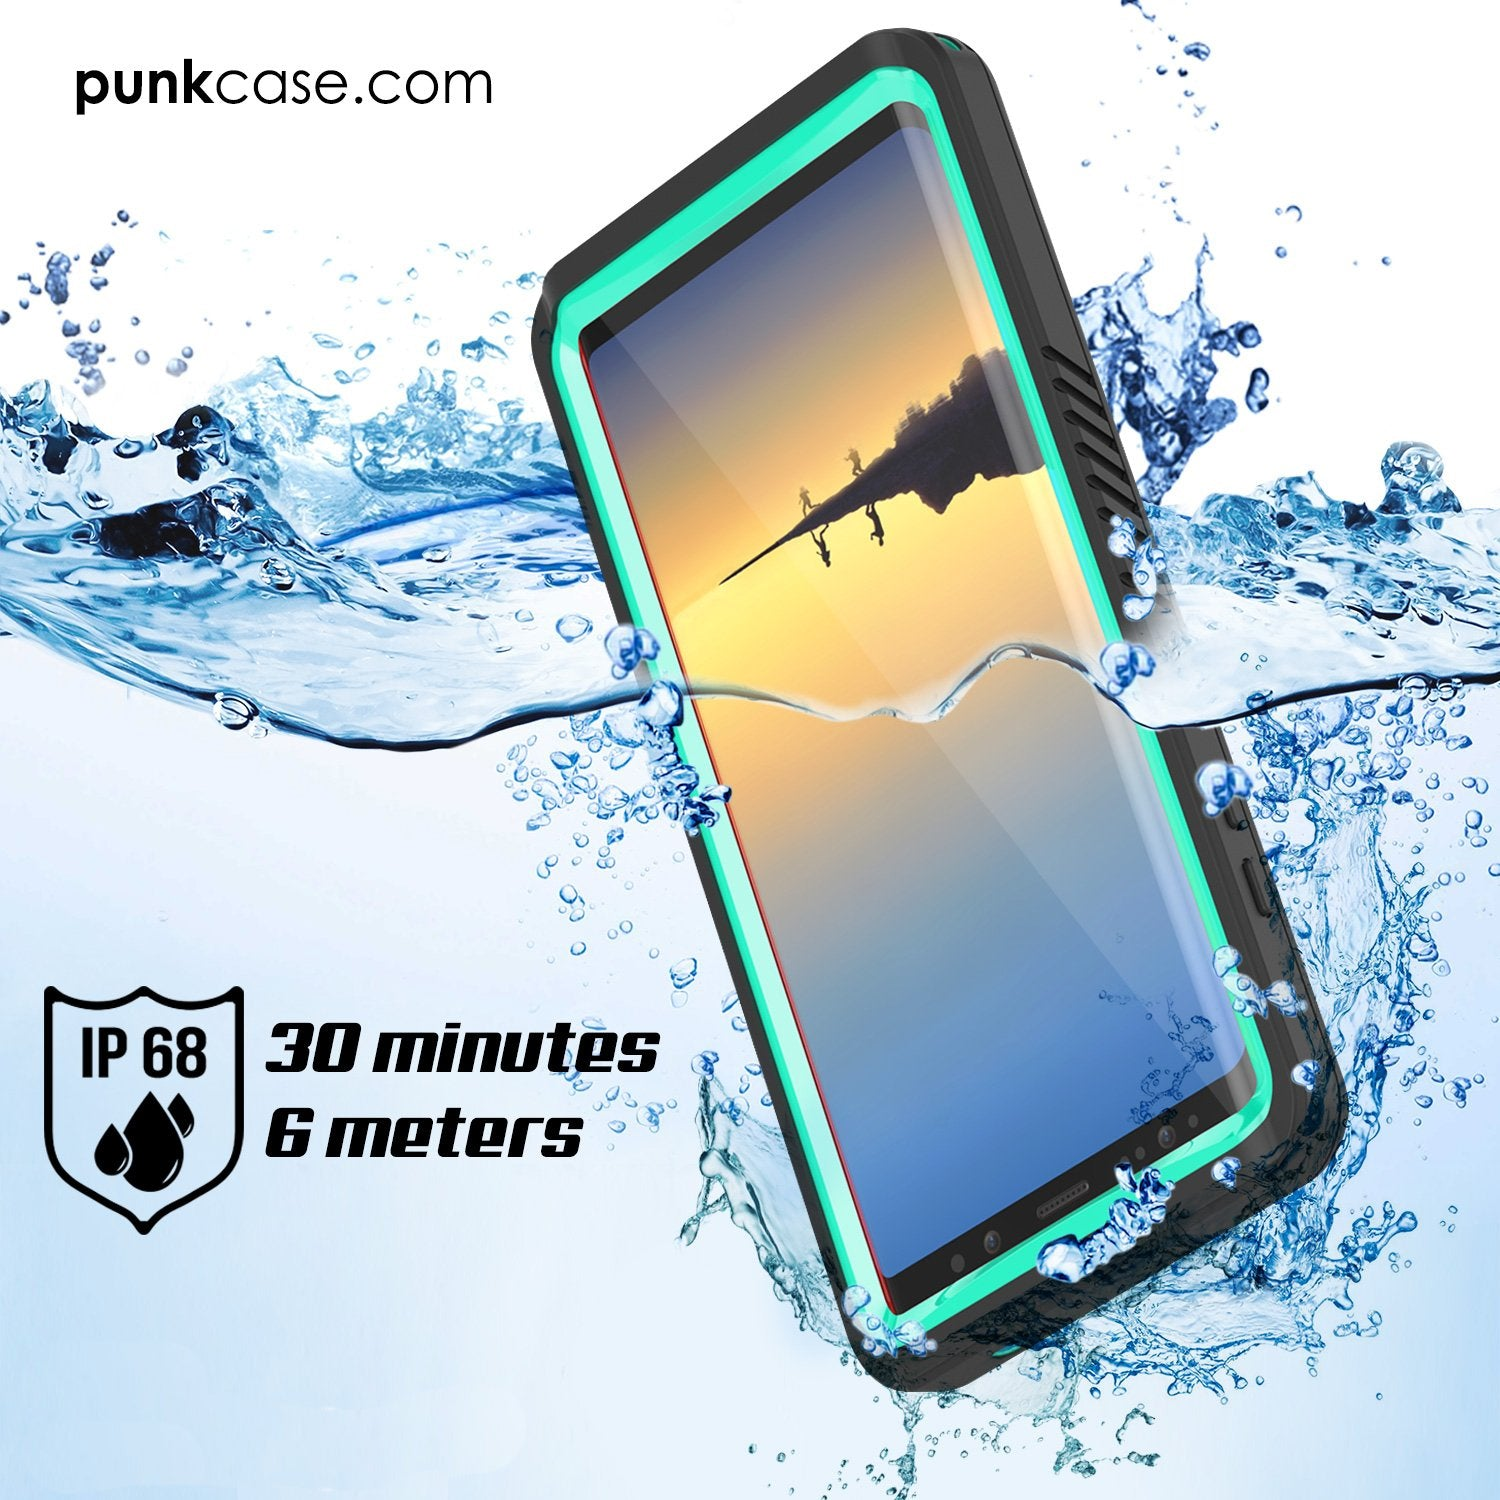 Galaxy Note 8 Waterproof Case, Punkcase [Extreme Series] [Teal]